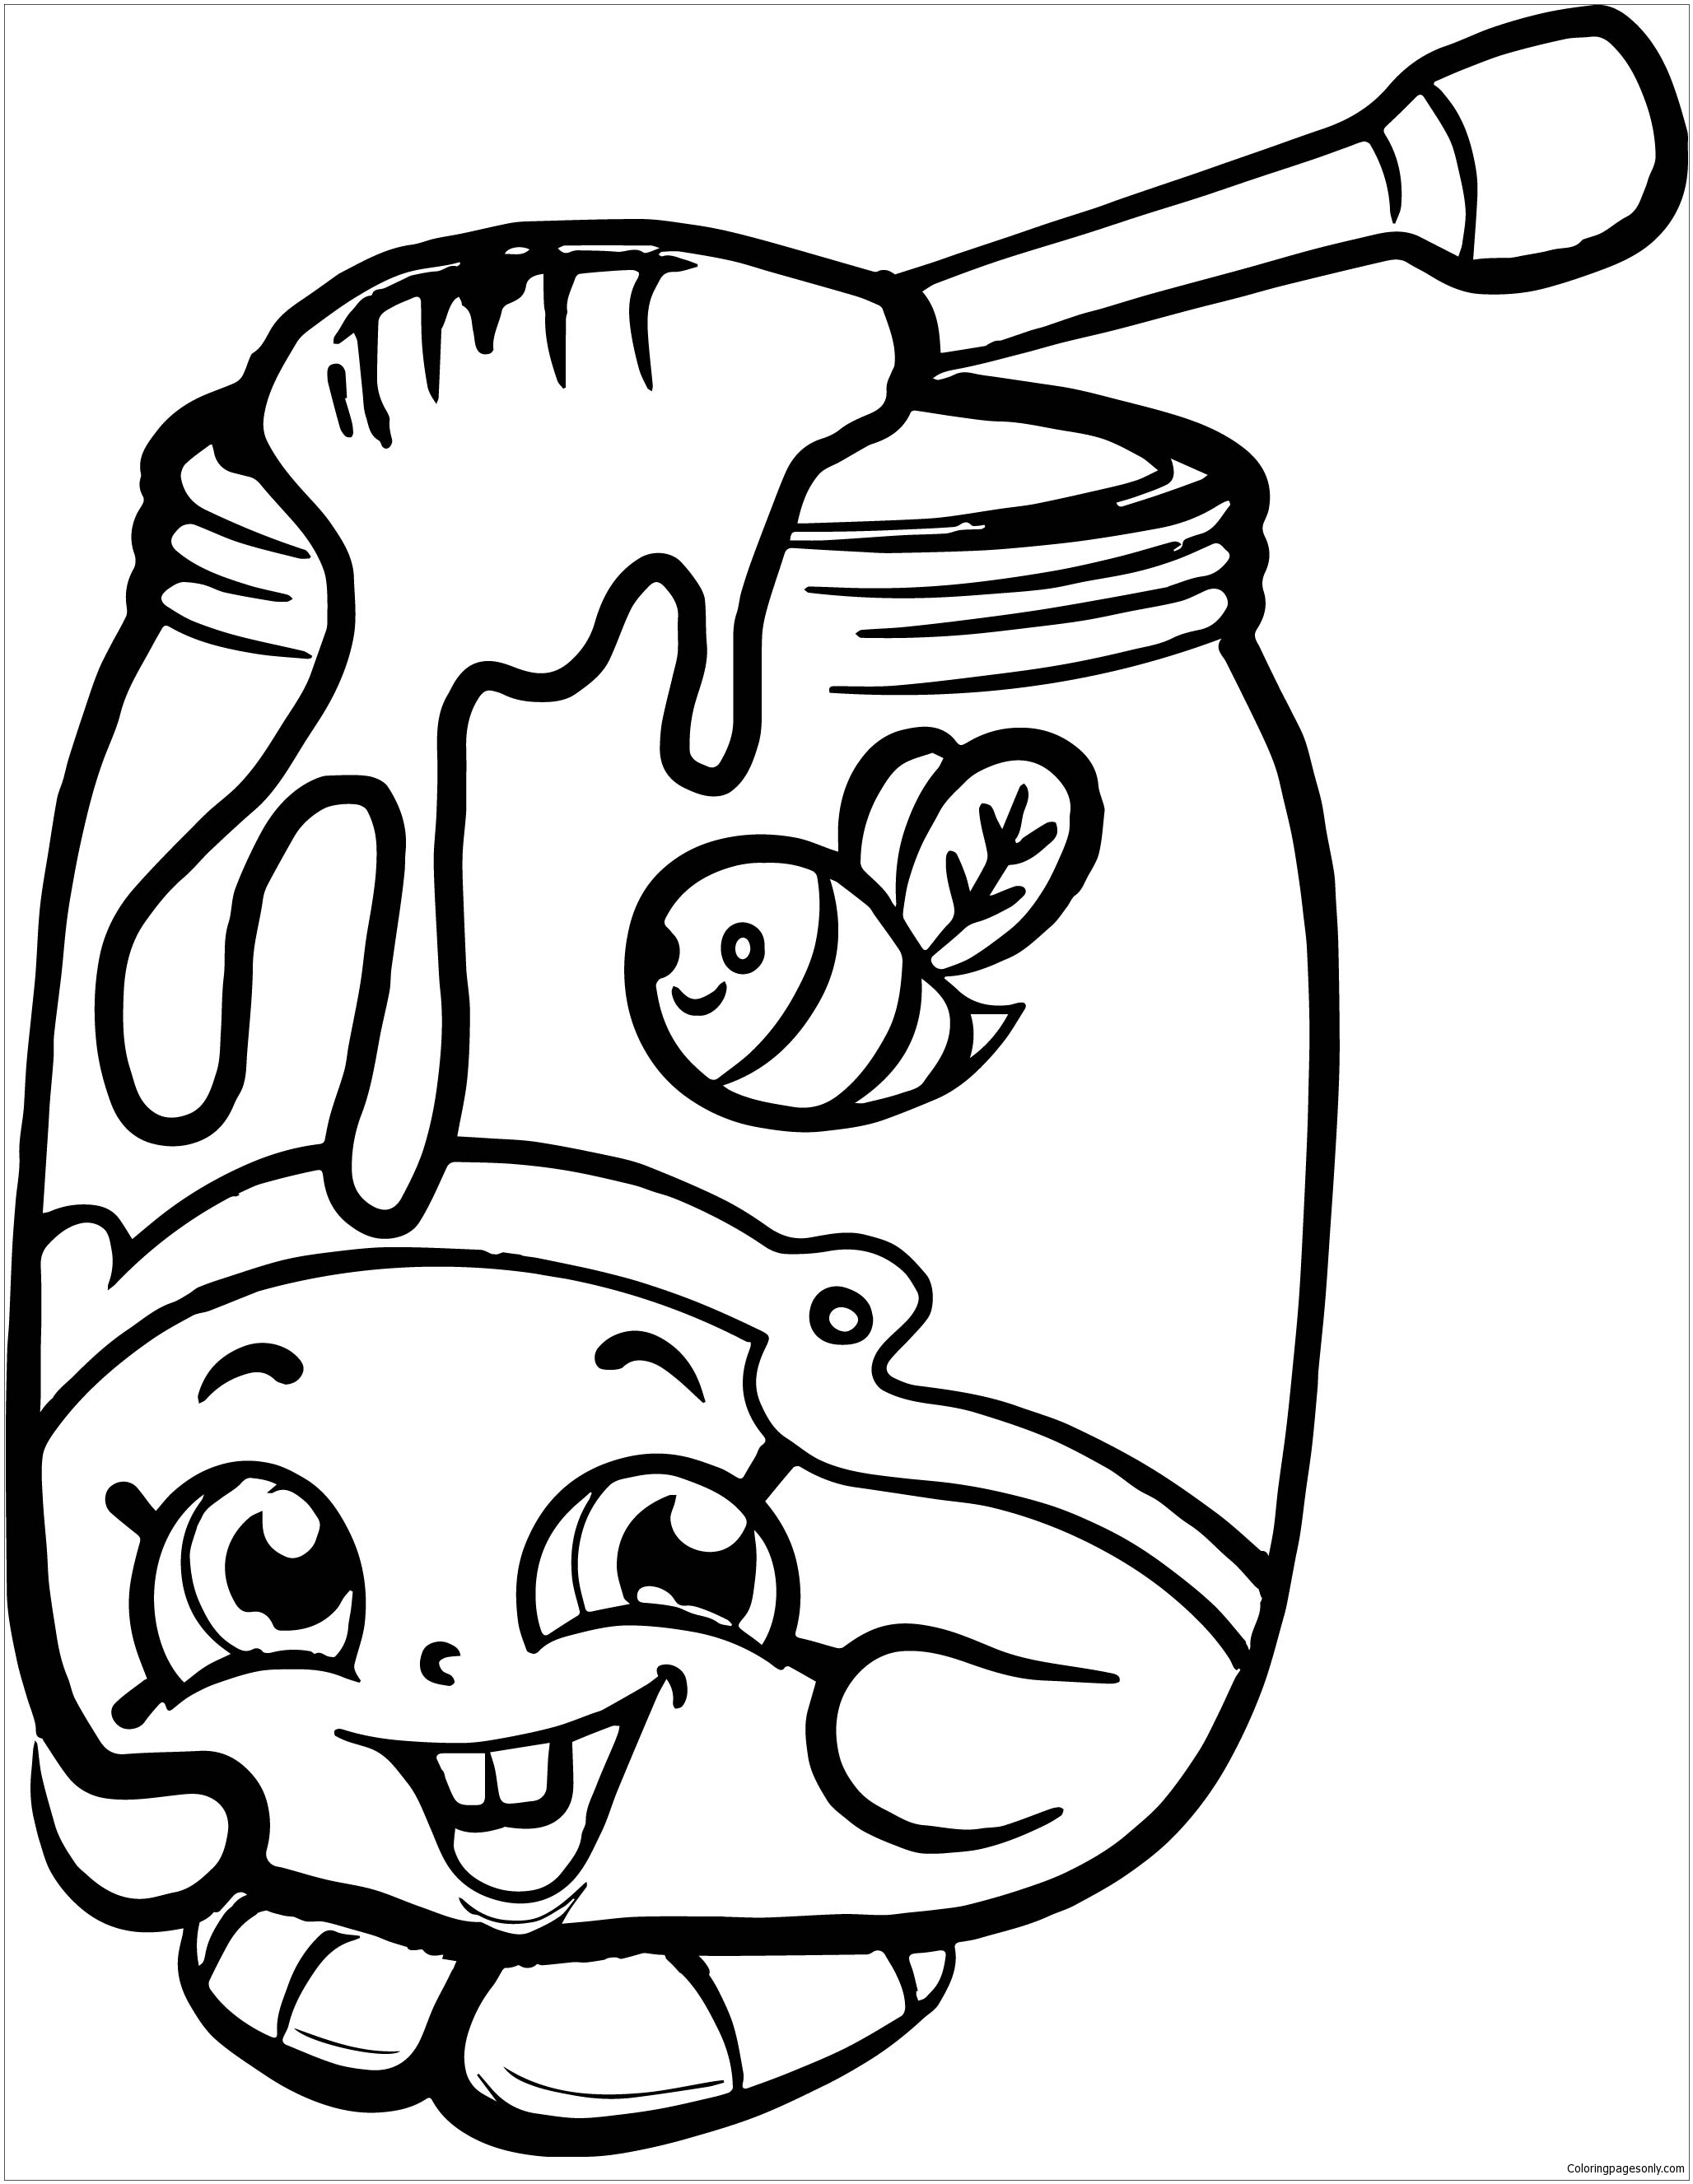 Shopkins coloring pages wishes - Honeeey Shopkins Season 2 Coloring Page